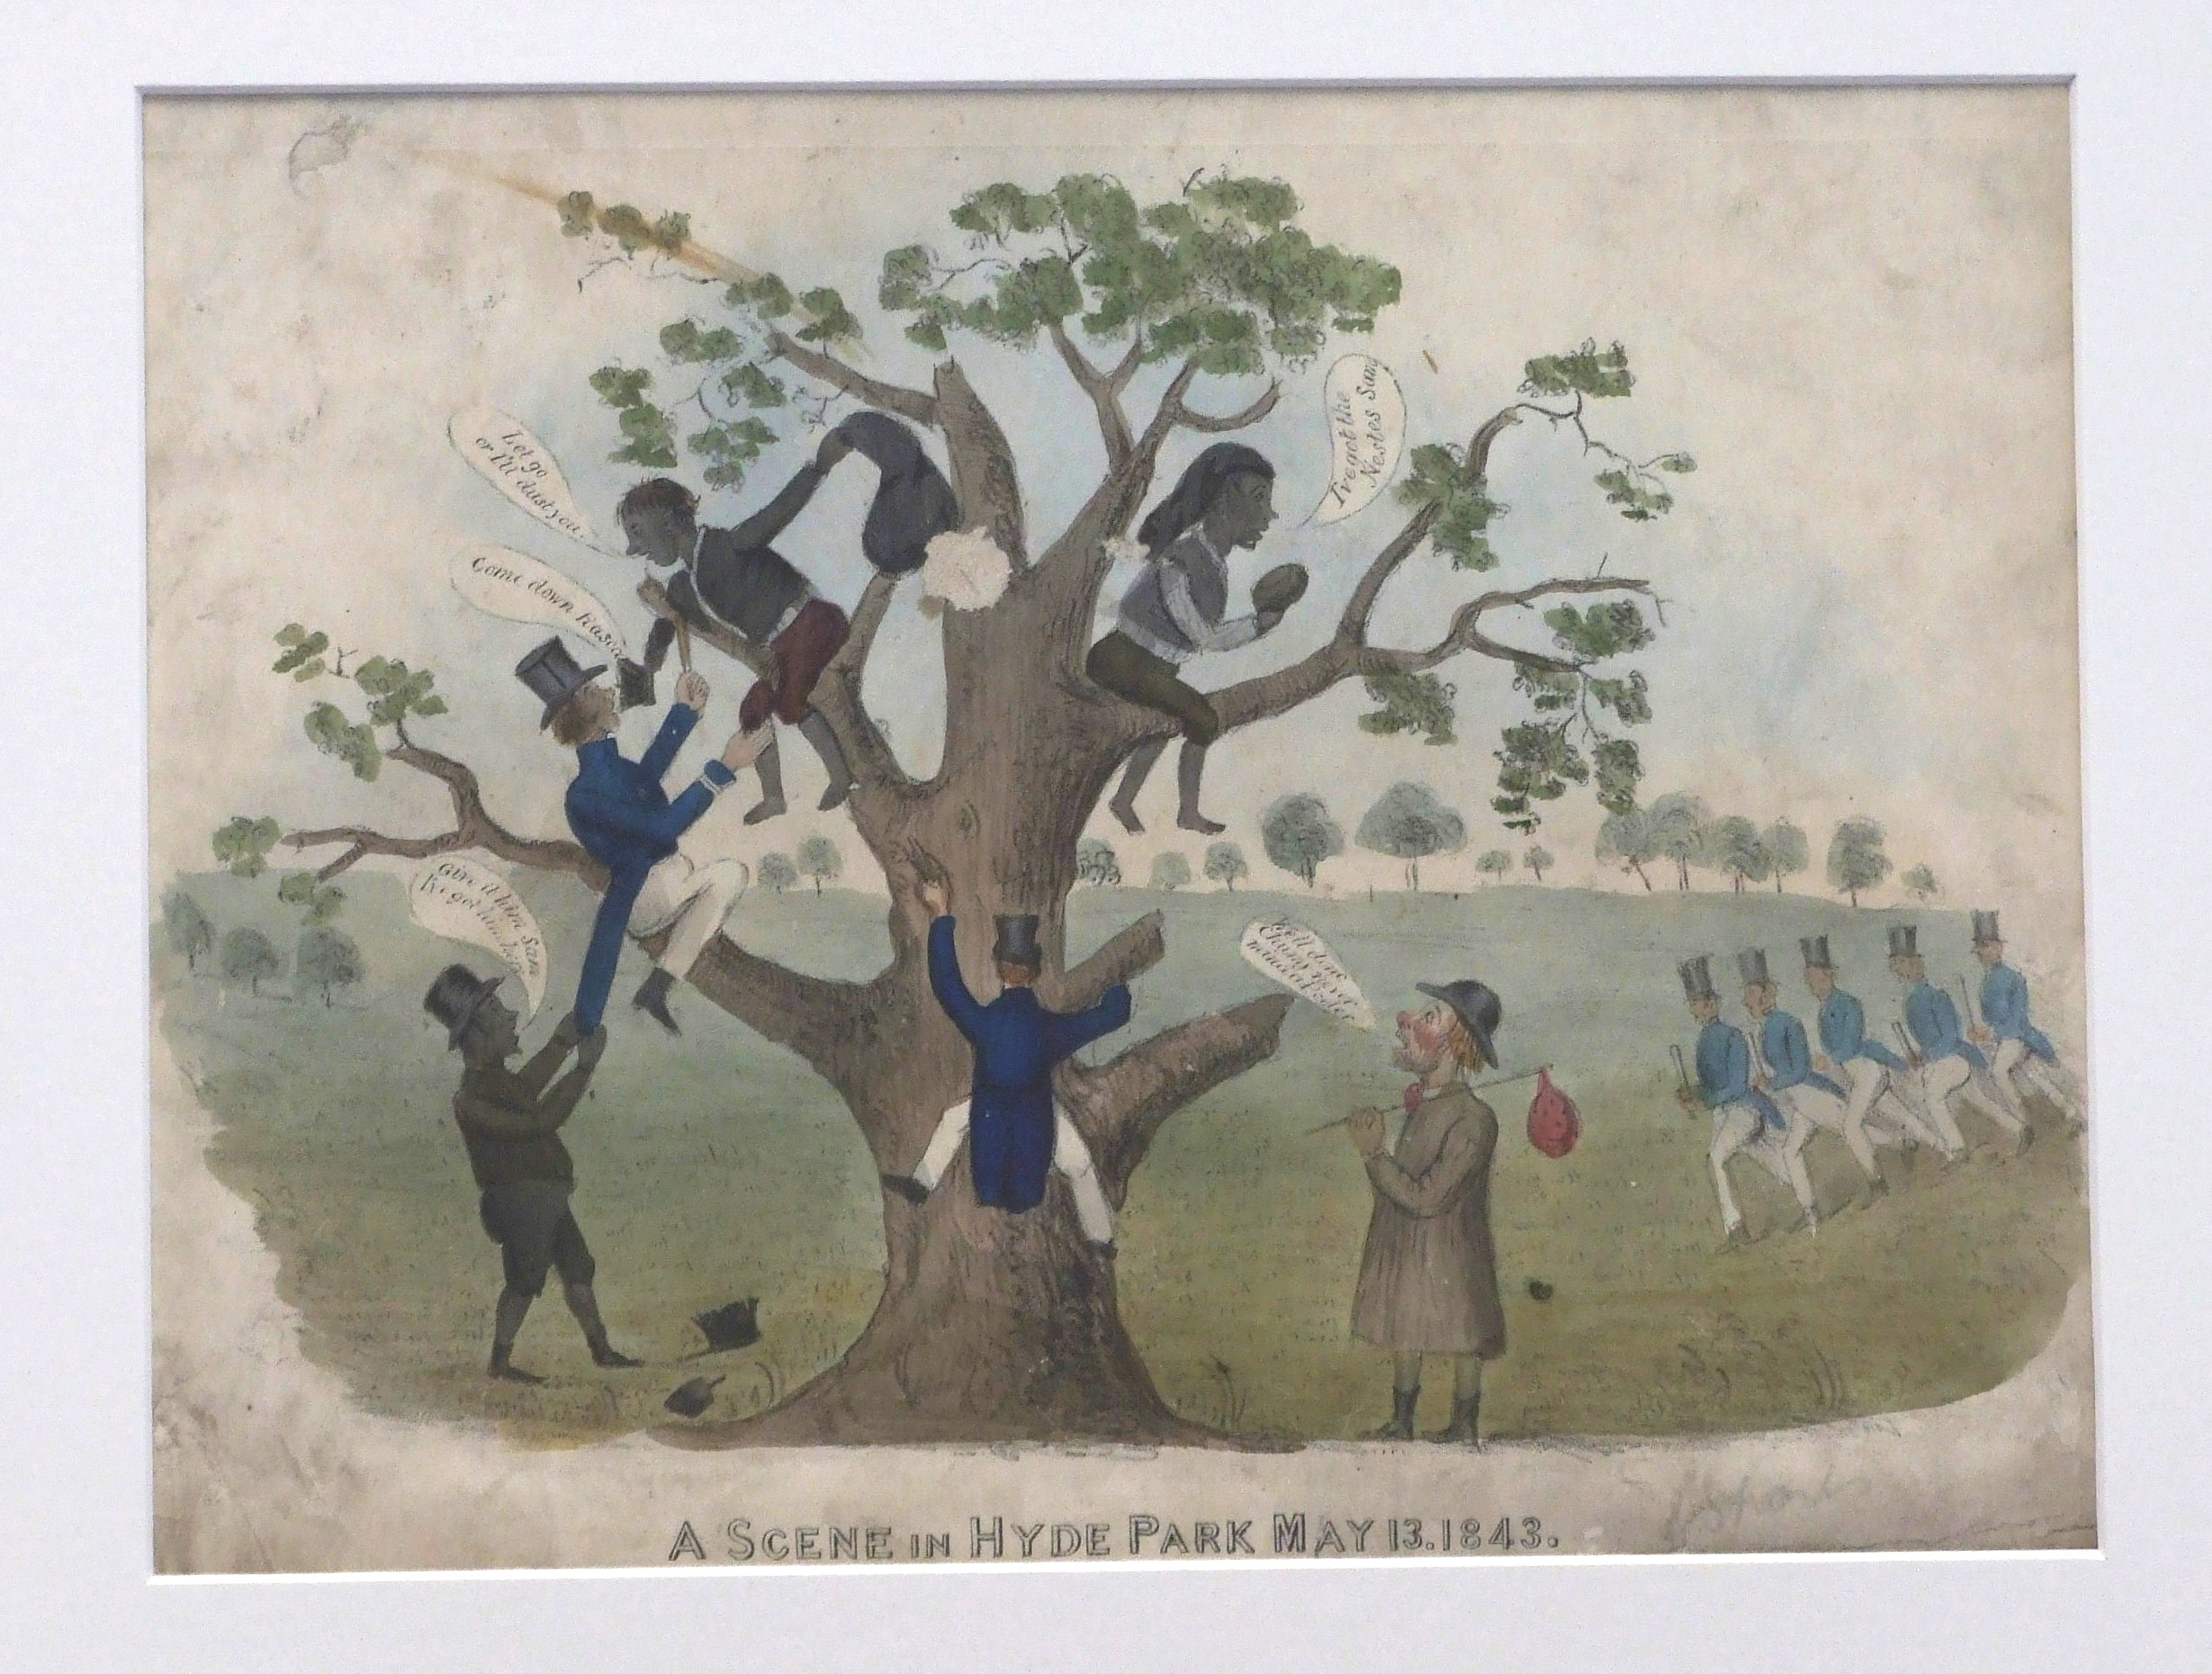 """The image depicts two chimney sweeps sitting in the high branches of a tree in Hyde Park, they have presumably stolen something and are attempting to evade the police who have begun to climb the tree. A third sweep stands at the bottom of the ground holding onto the coat tails of one of the policeman.   Five more policeman approach from the background in military formation. One policeman has hold of a sweep and says """"Come down you rascal"""".   """"Let go or I'll dust you"""" threatens one the sweep in return, holding a full sack of soot.  The other sweep,  sitting in the tree brags; """"I've got the Nestes Sam"""".  Sam  is a beggarly man standing at the foot of the tree holding a bundle shouting words of encouragement to the sweeps."""